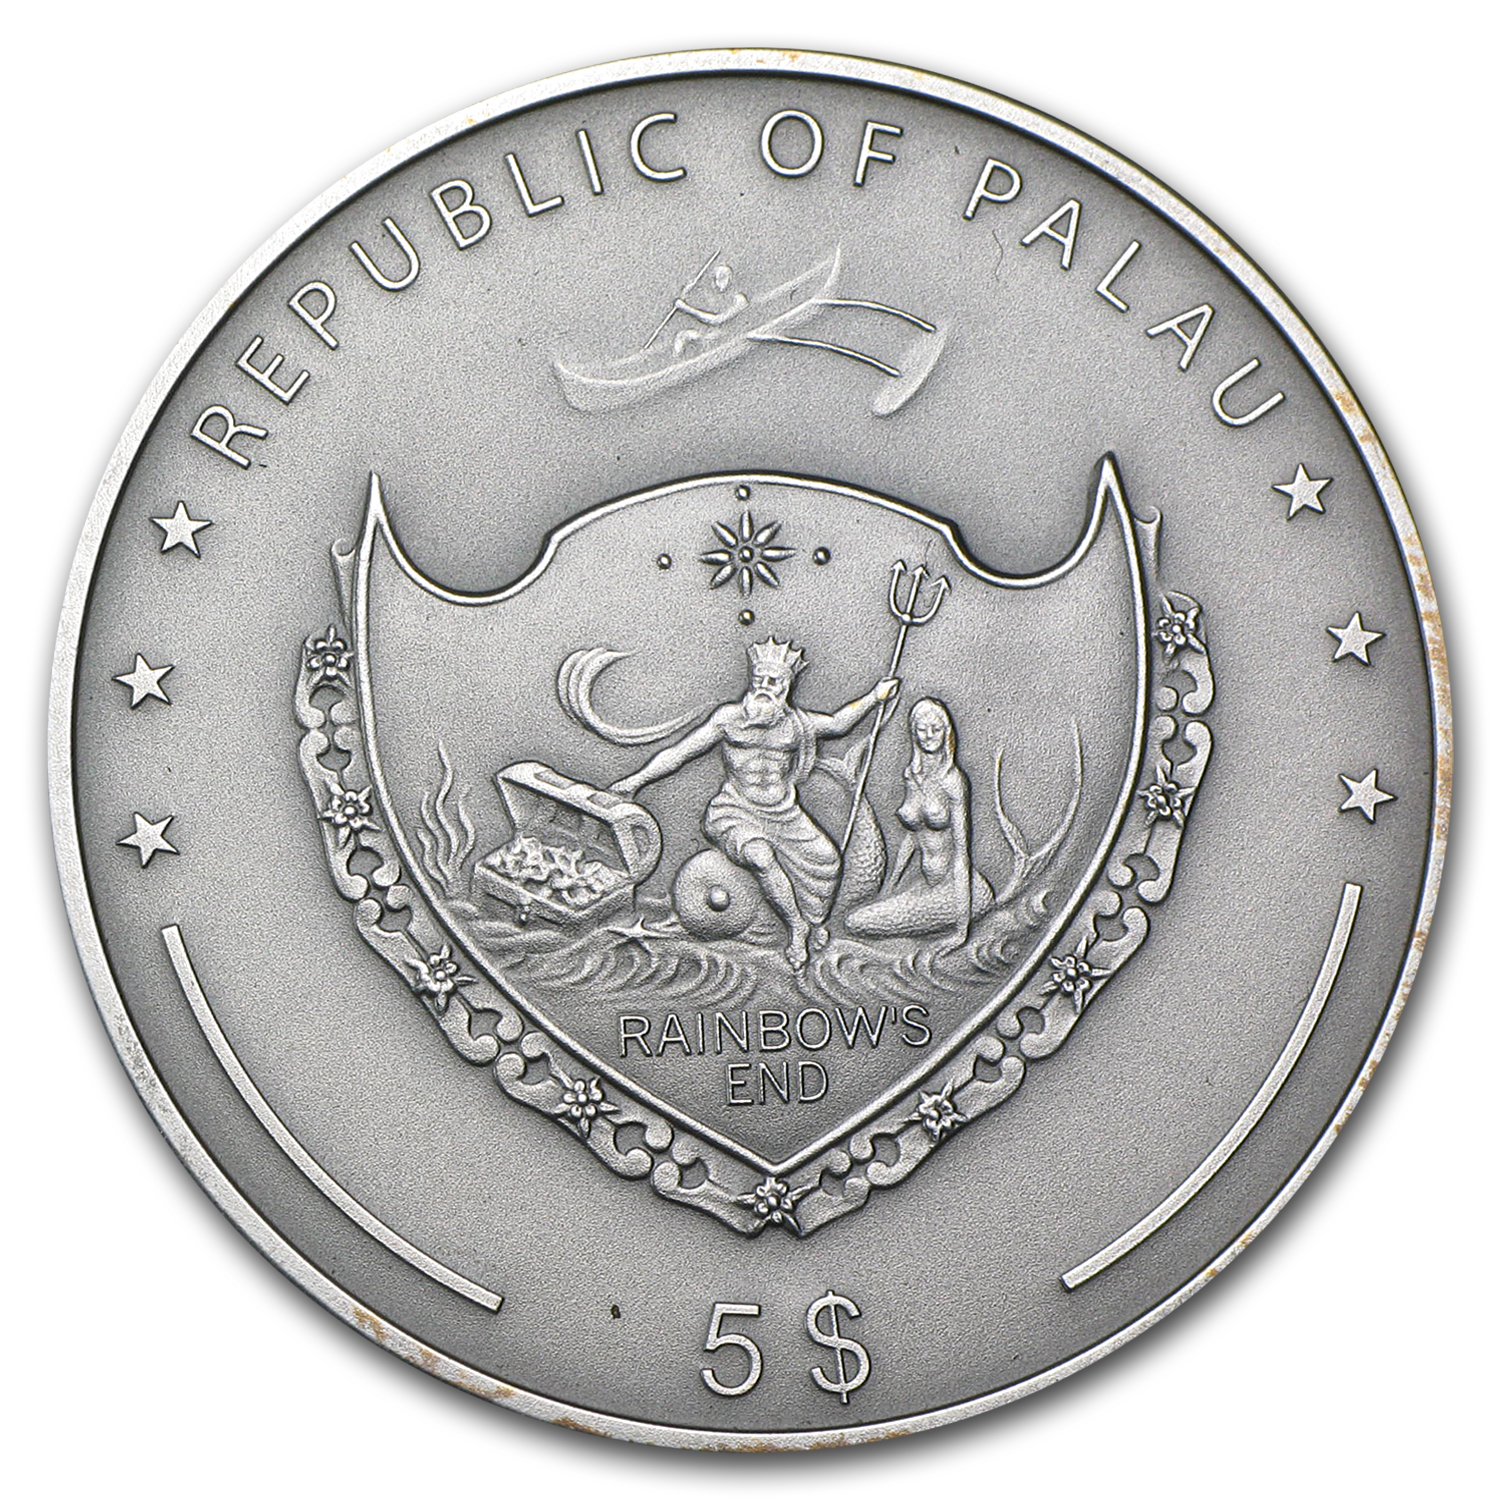 2010 Palau Proof Silver $5 Treasures of the World Sapphire